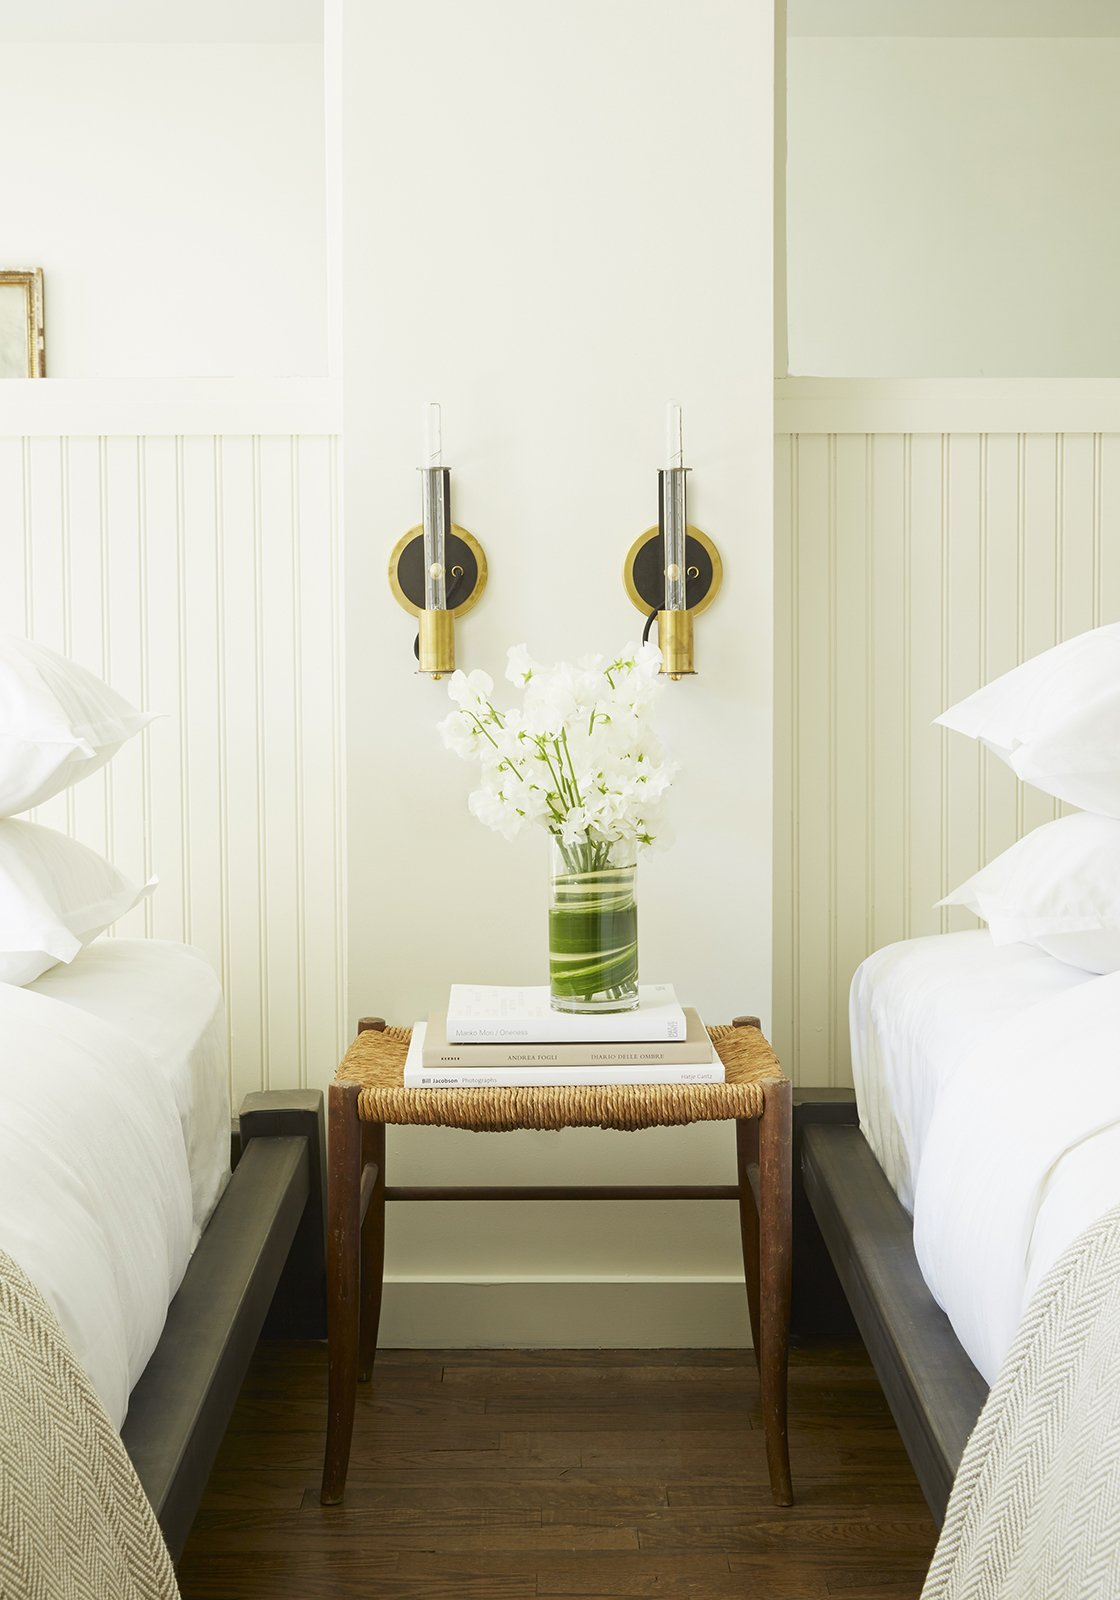 Vermont manufacturer Conant Lighting produced the wall sconces, which are ASH's design, next to each bed.  60+ Modern Lighting Solutions by Dwell from This Boutique Hotel Loves its City Like No Other